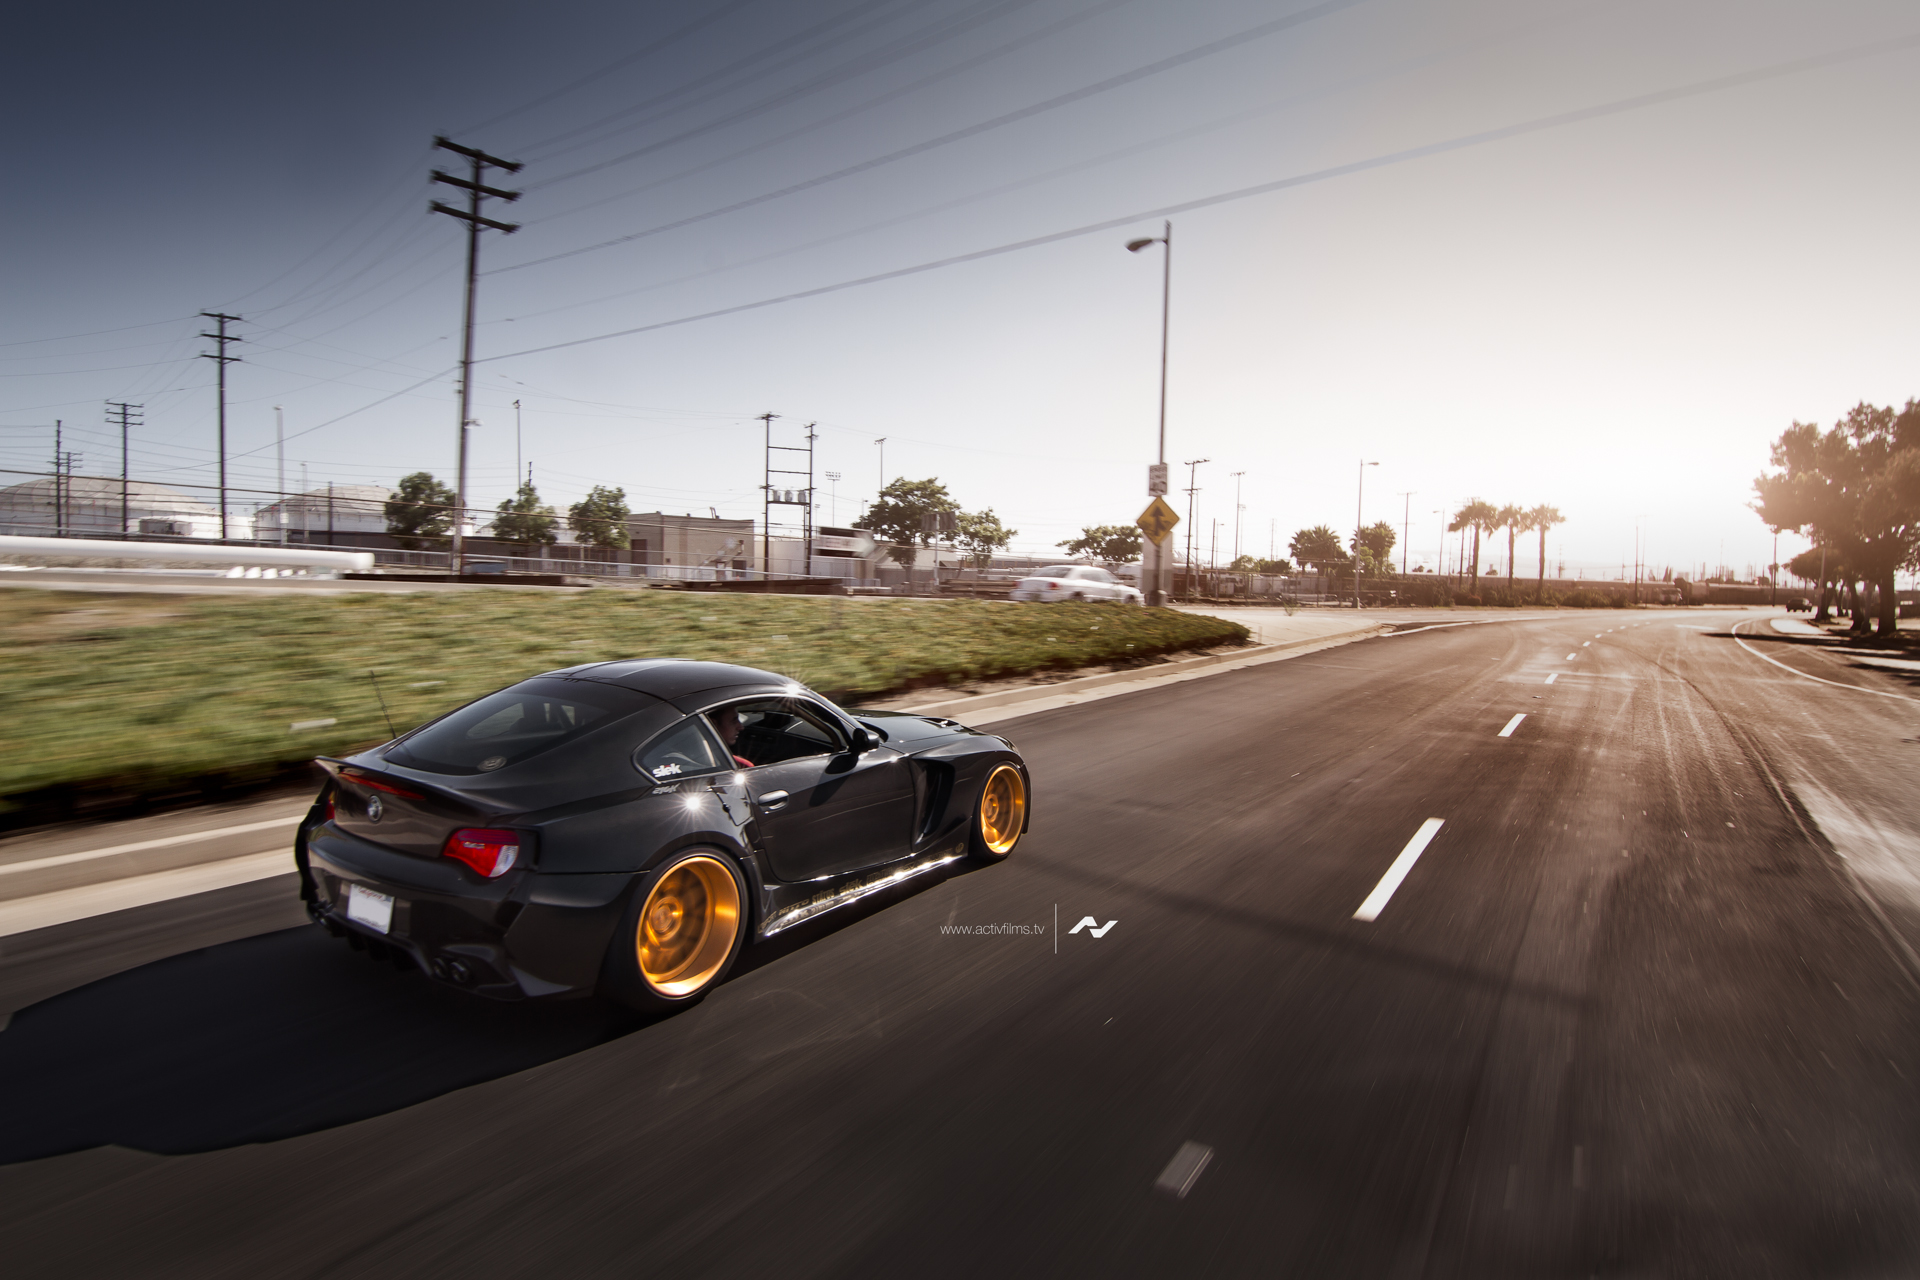 bmw-e86-z4-m-by-slek-design-is-unique-video_9.jpg